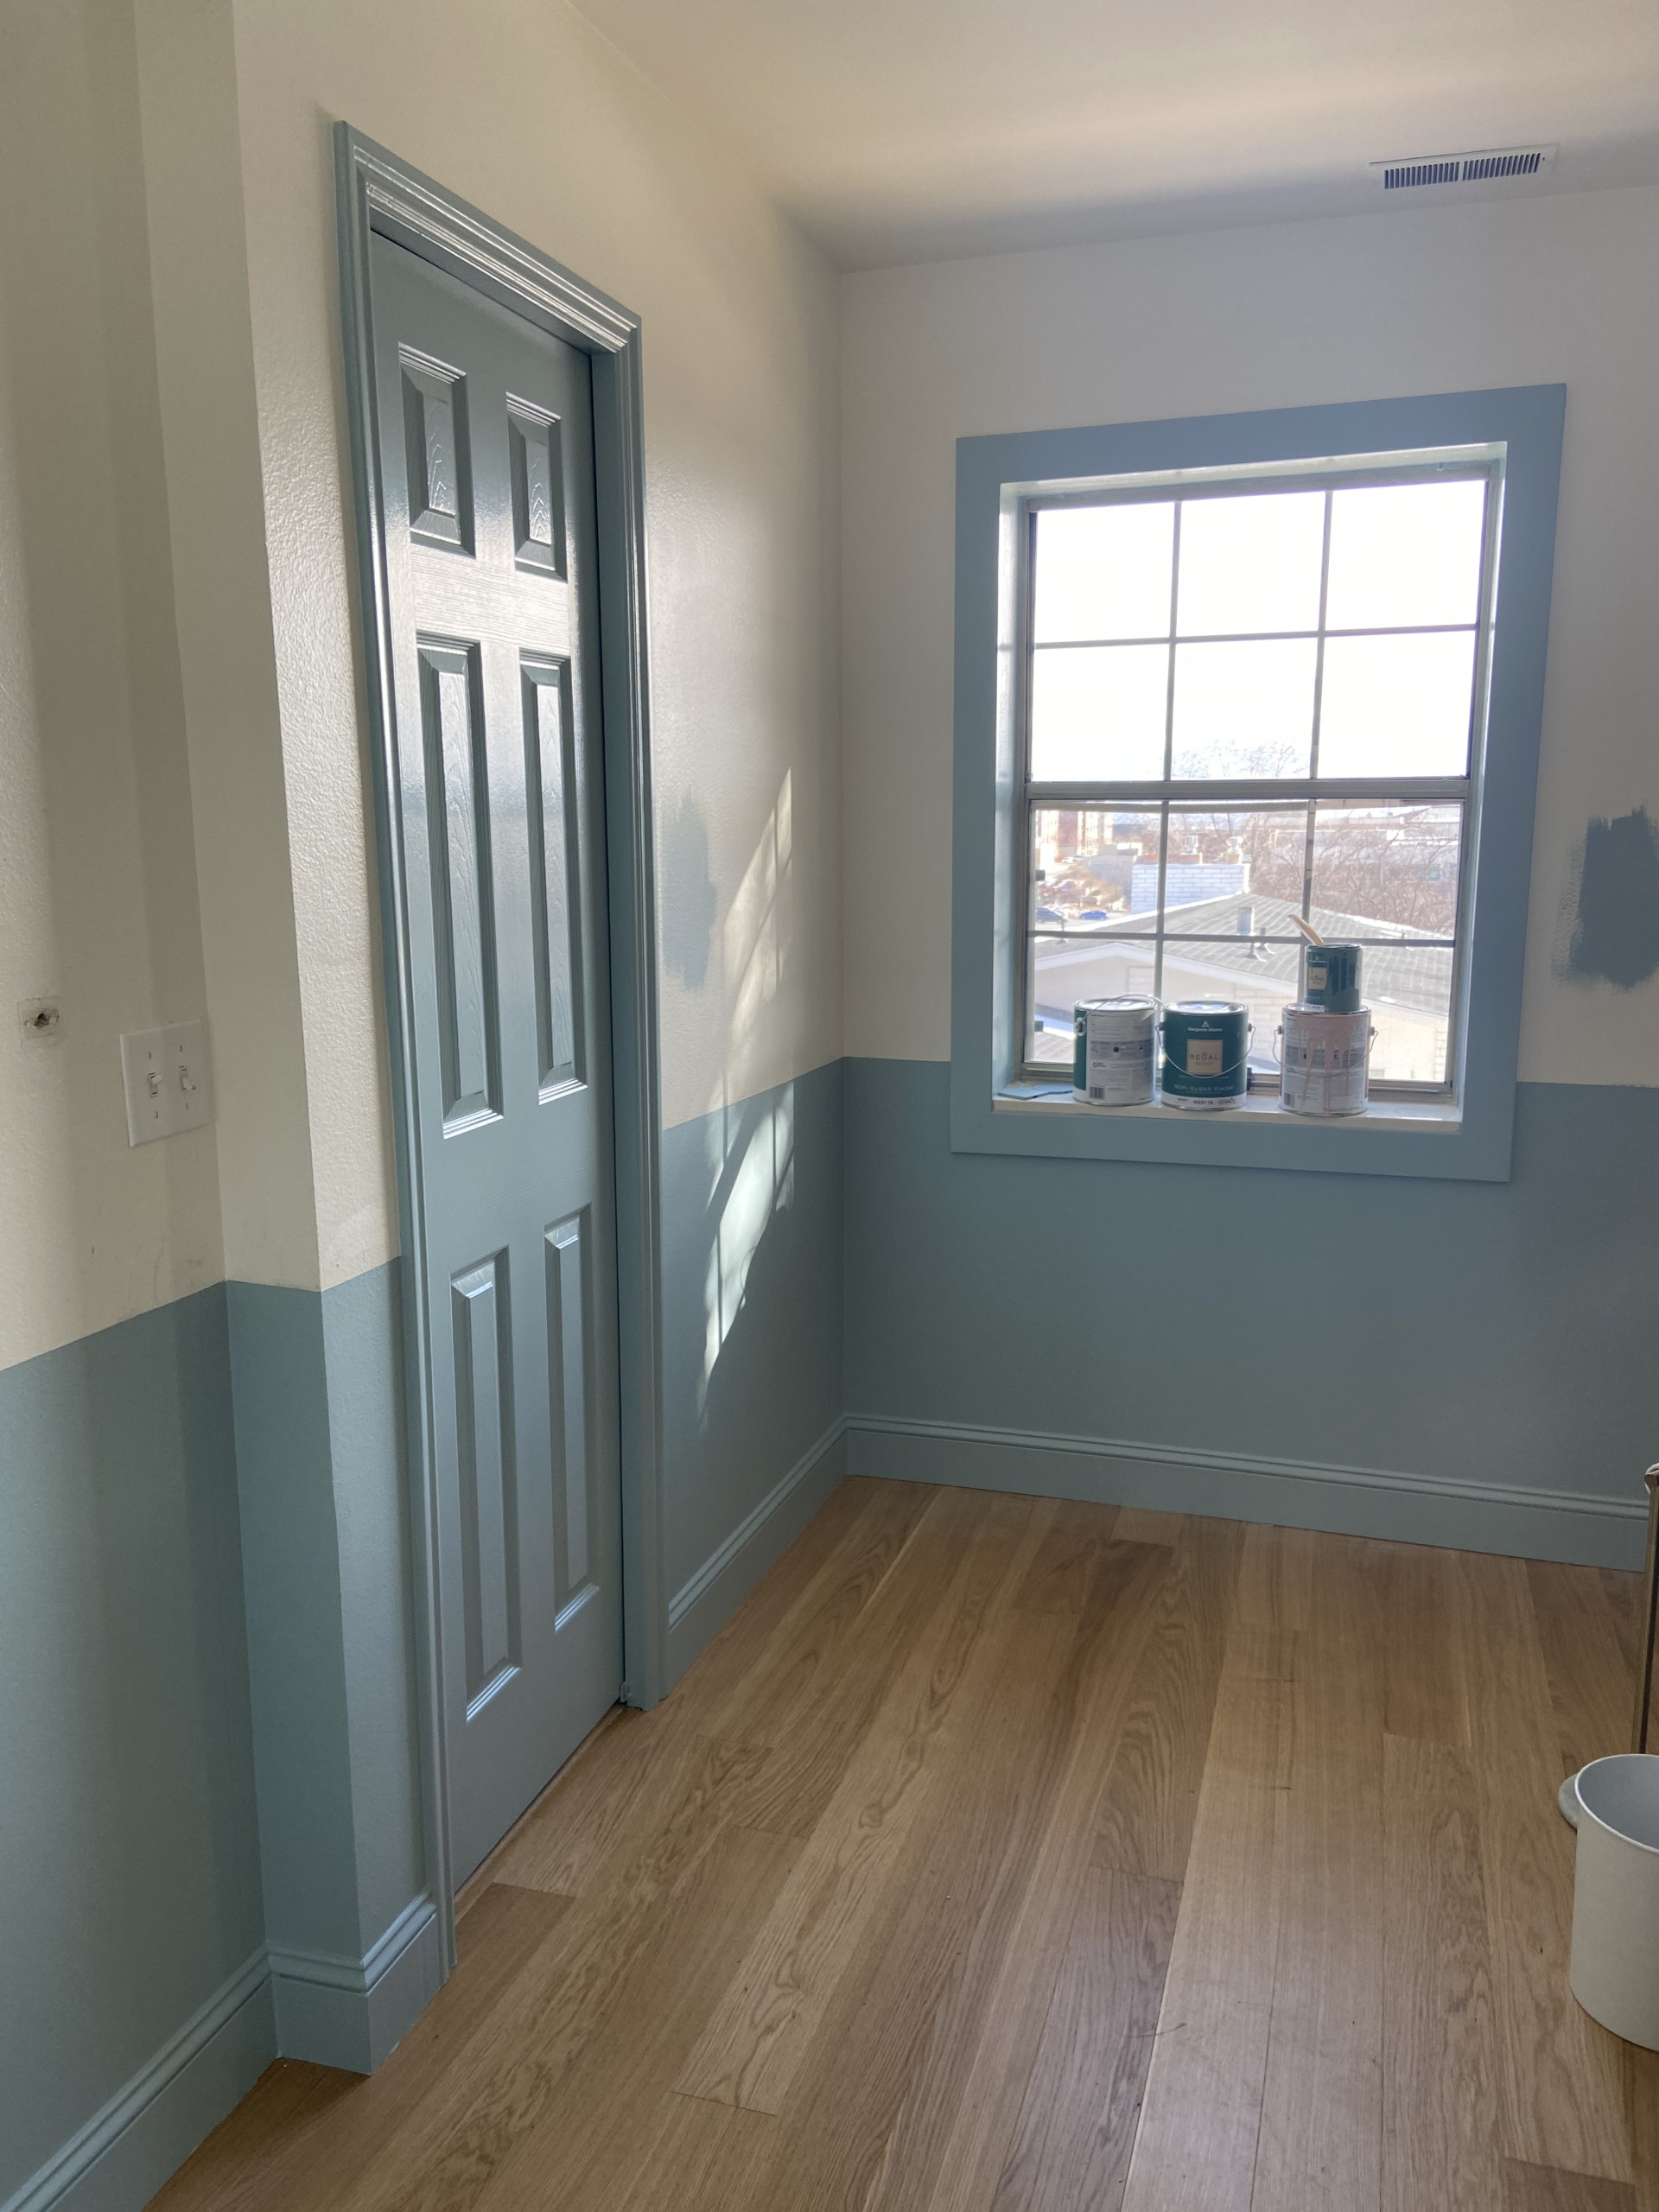 Interior shot of a room with wooden floors and blue and white walls.